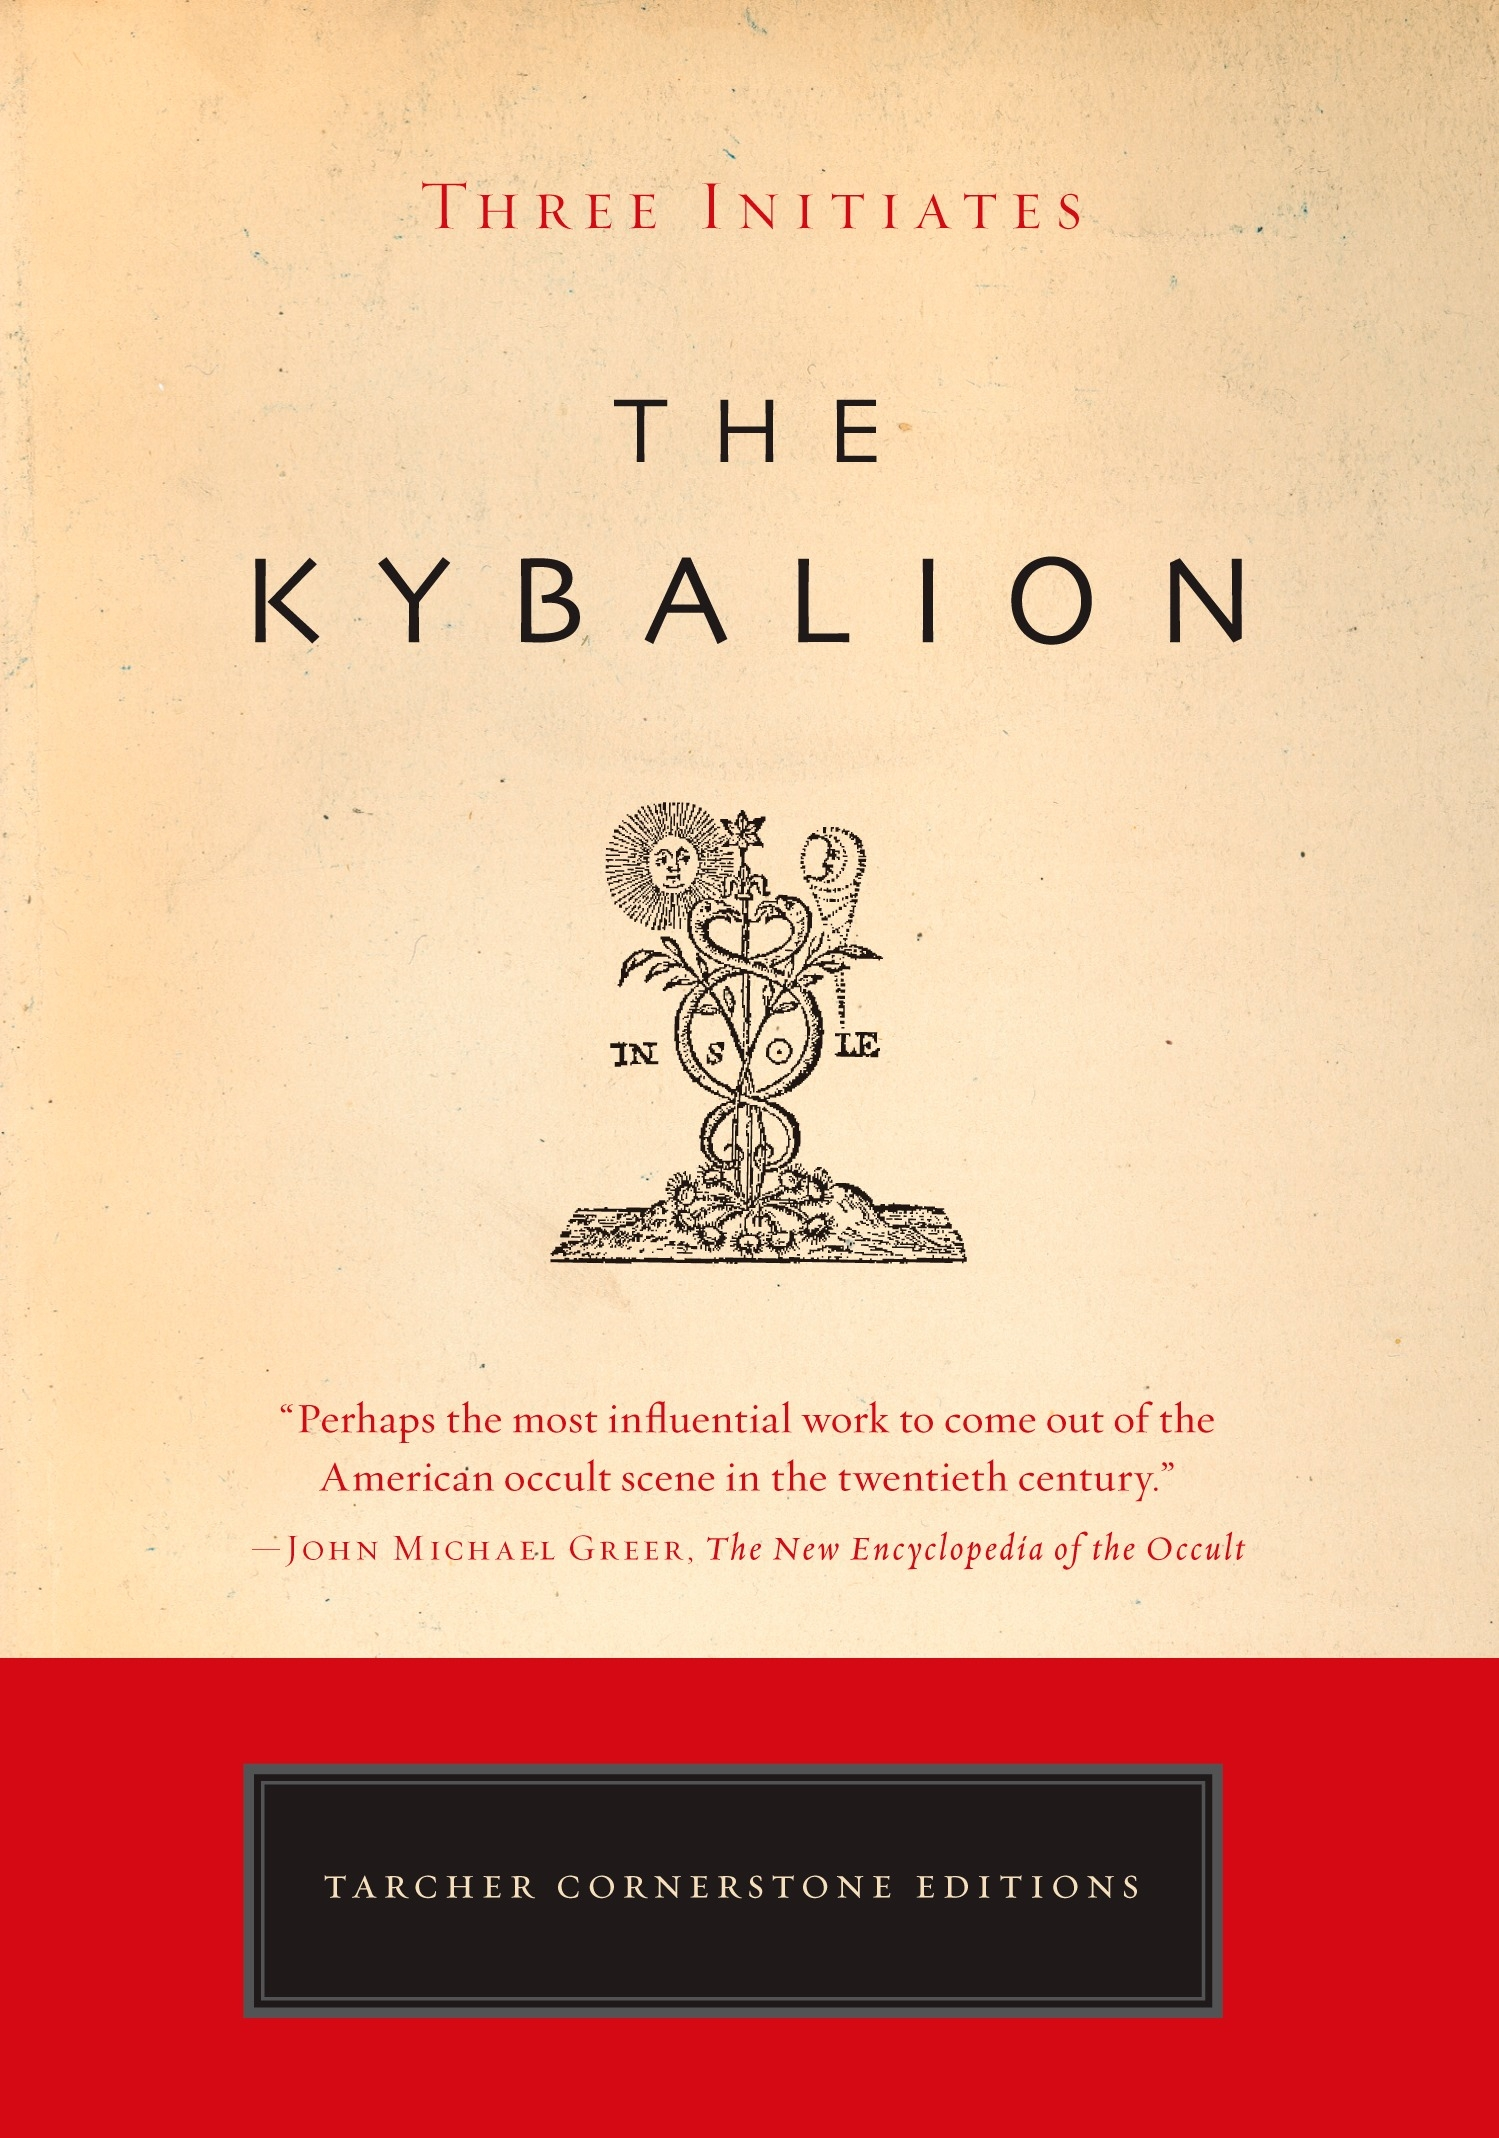 The Kybalion by Three Initiates - Penguin Books New Zealand